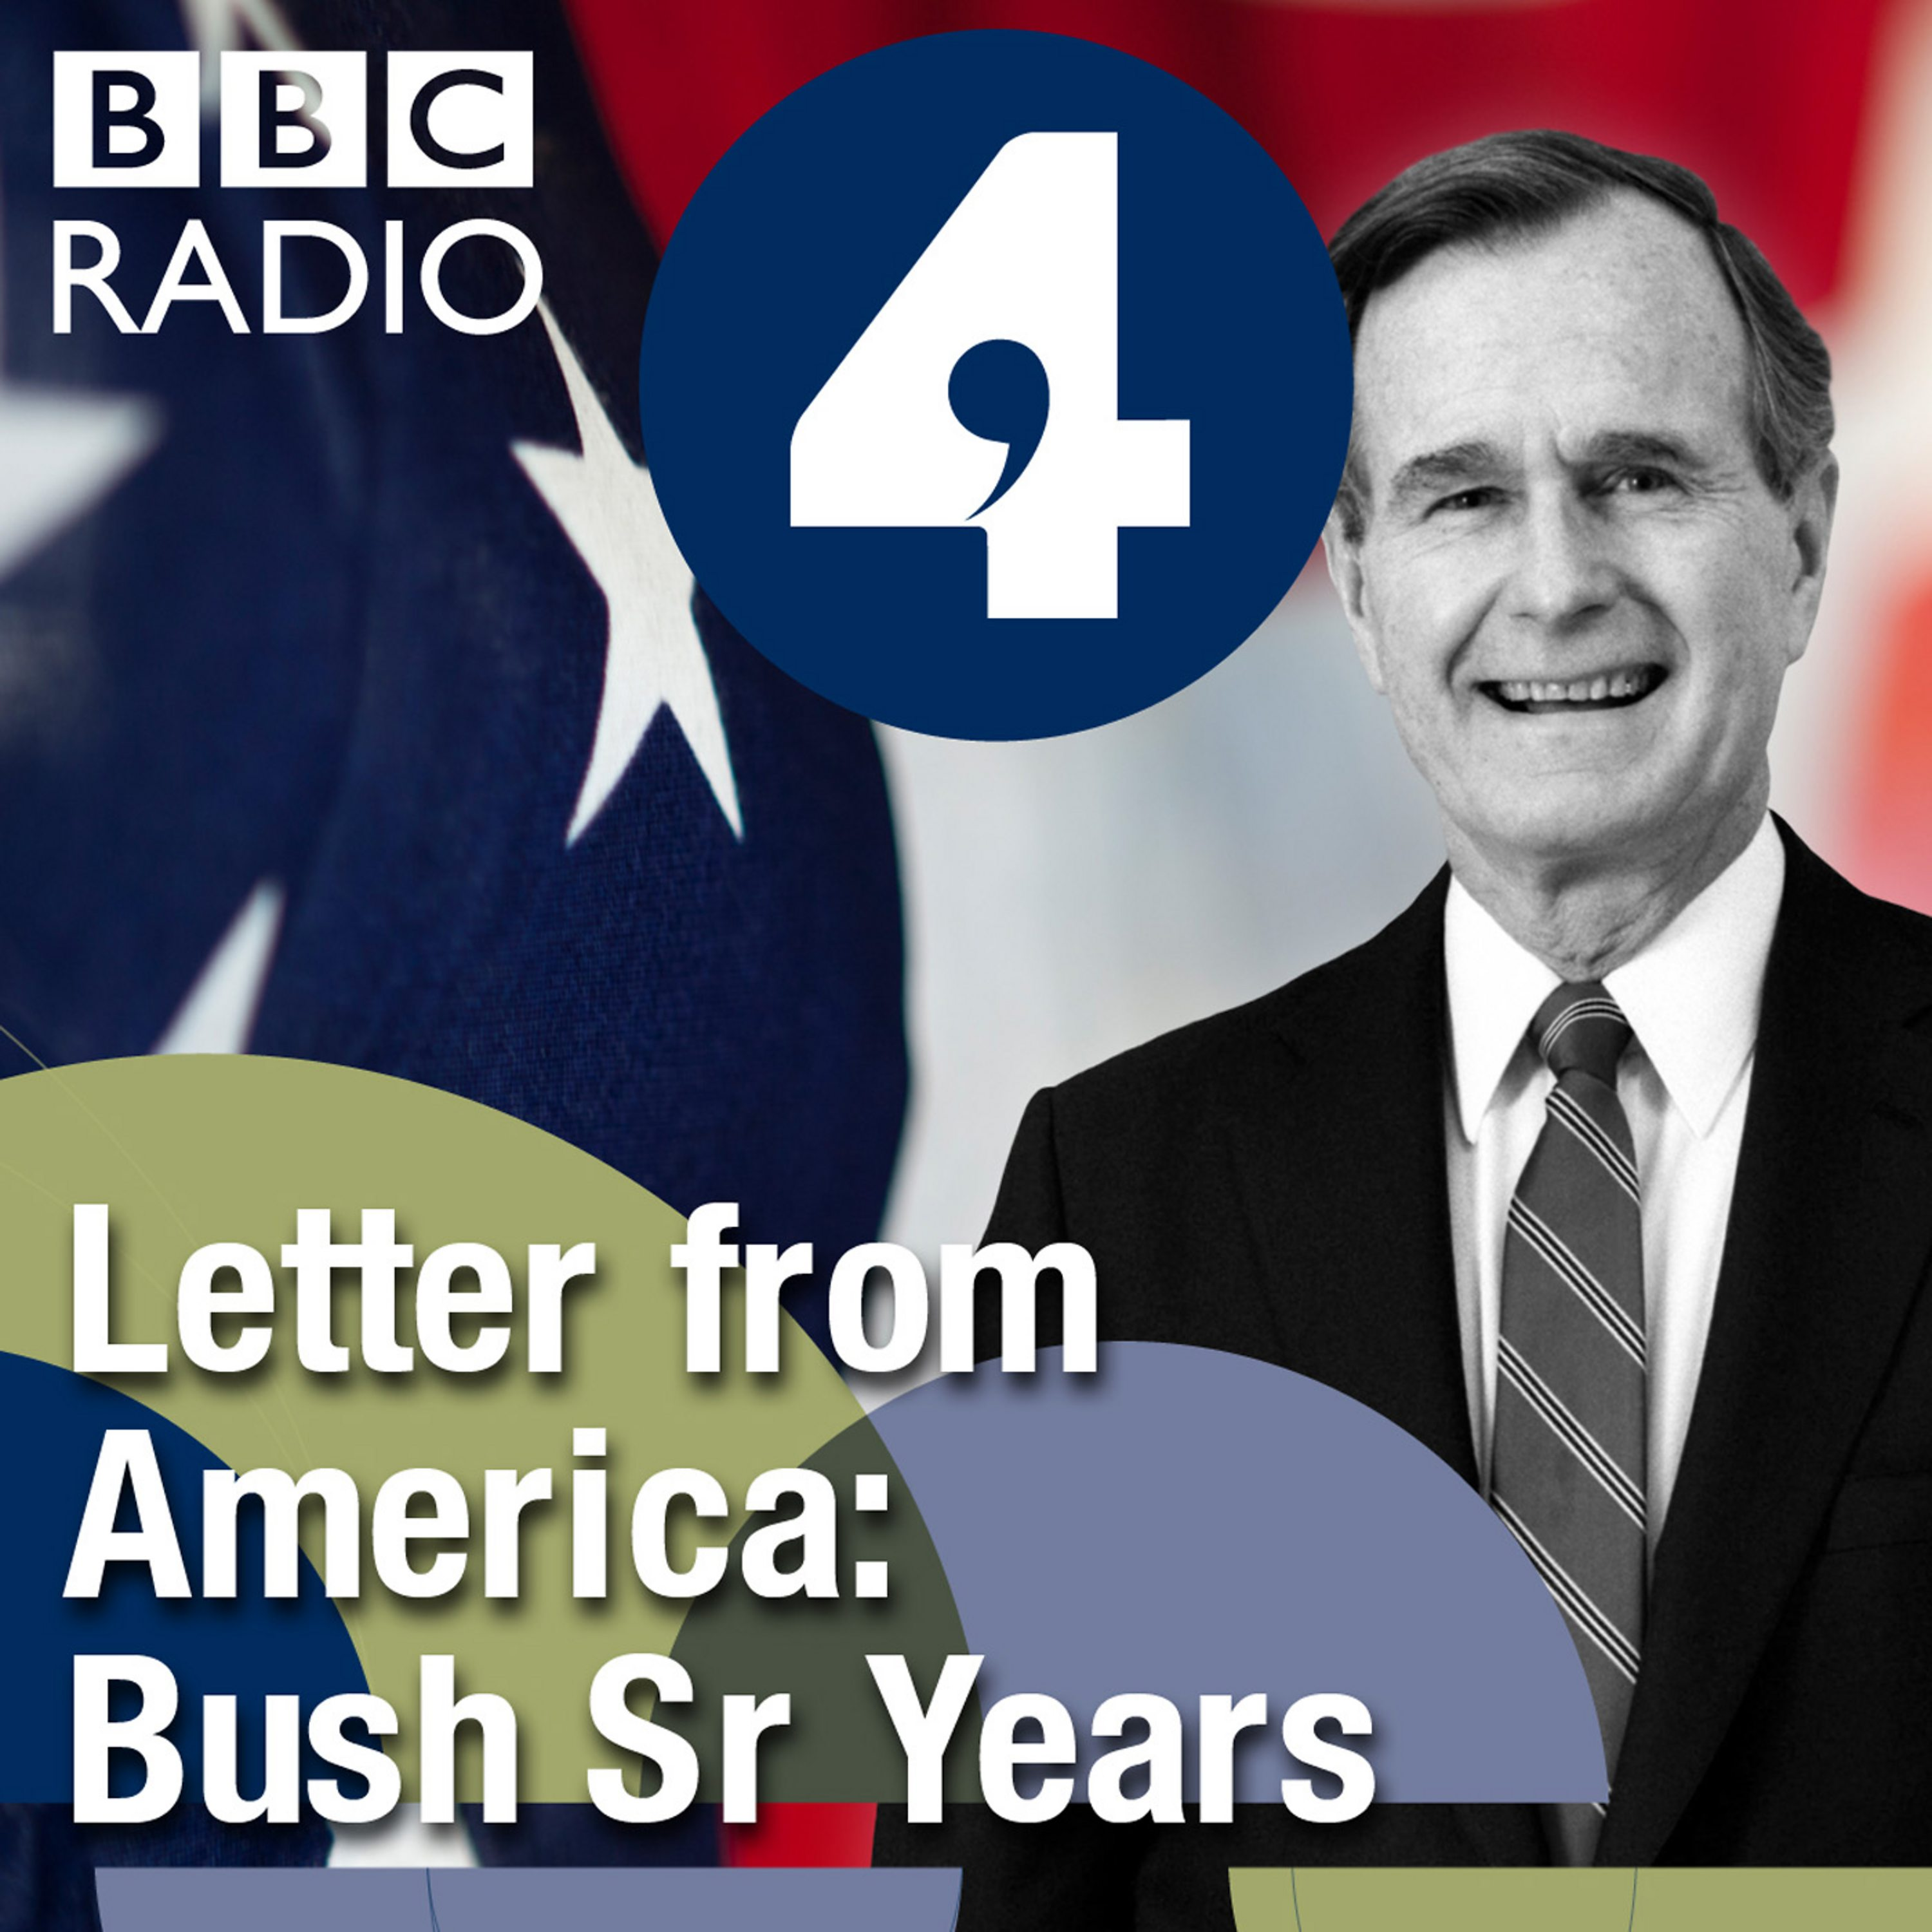 Letter from America by Alistair Cooke: The Bush Sr Years (1989-1992) thumbnail